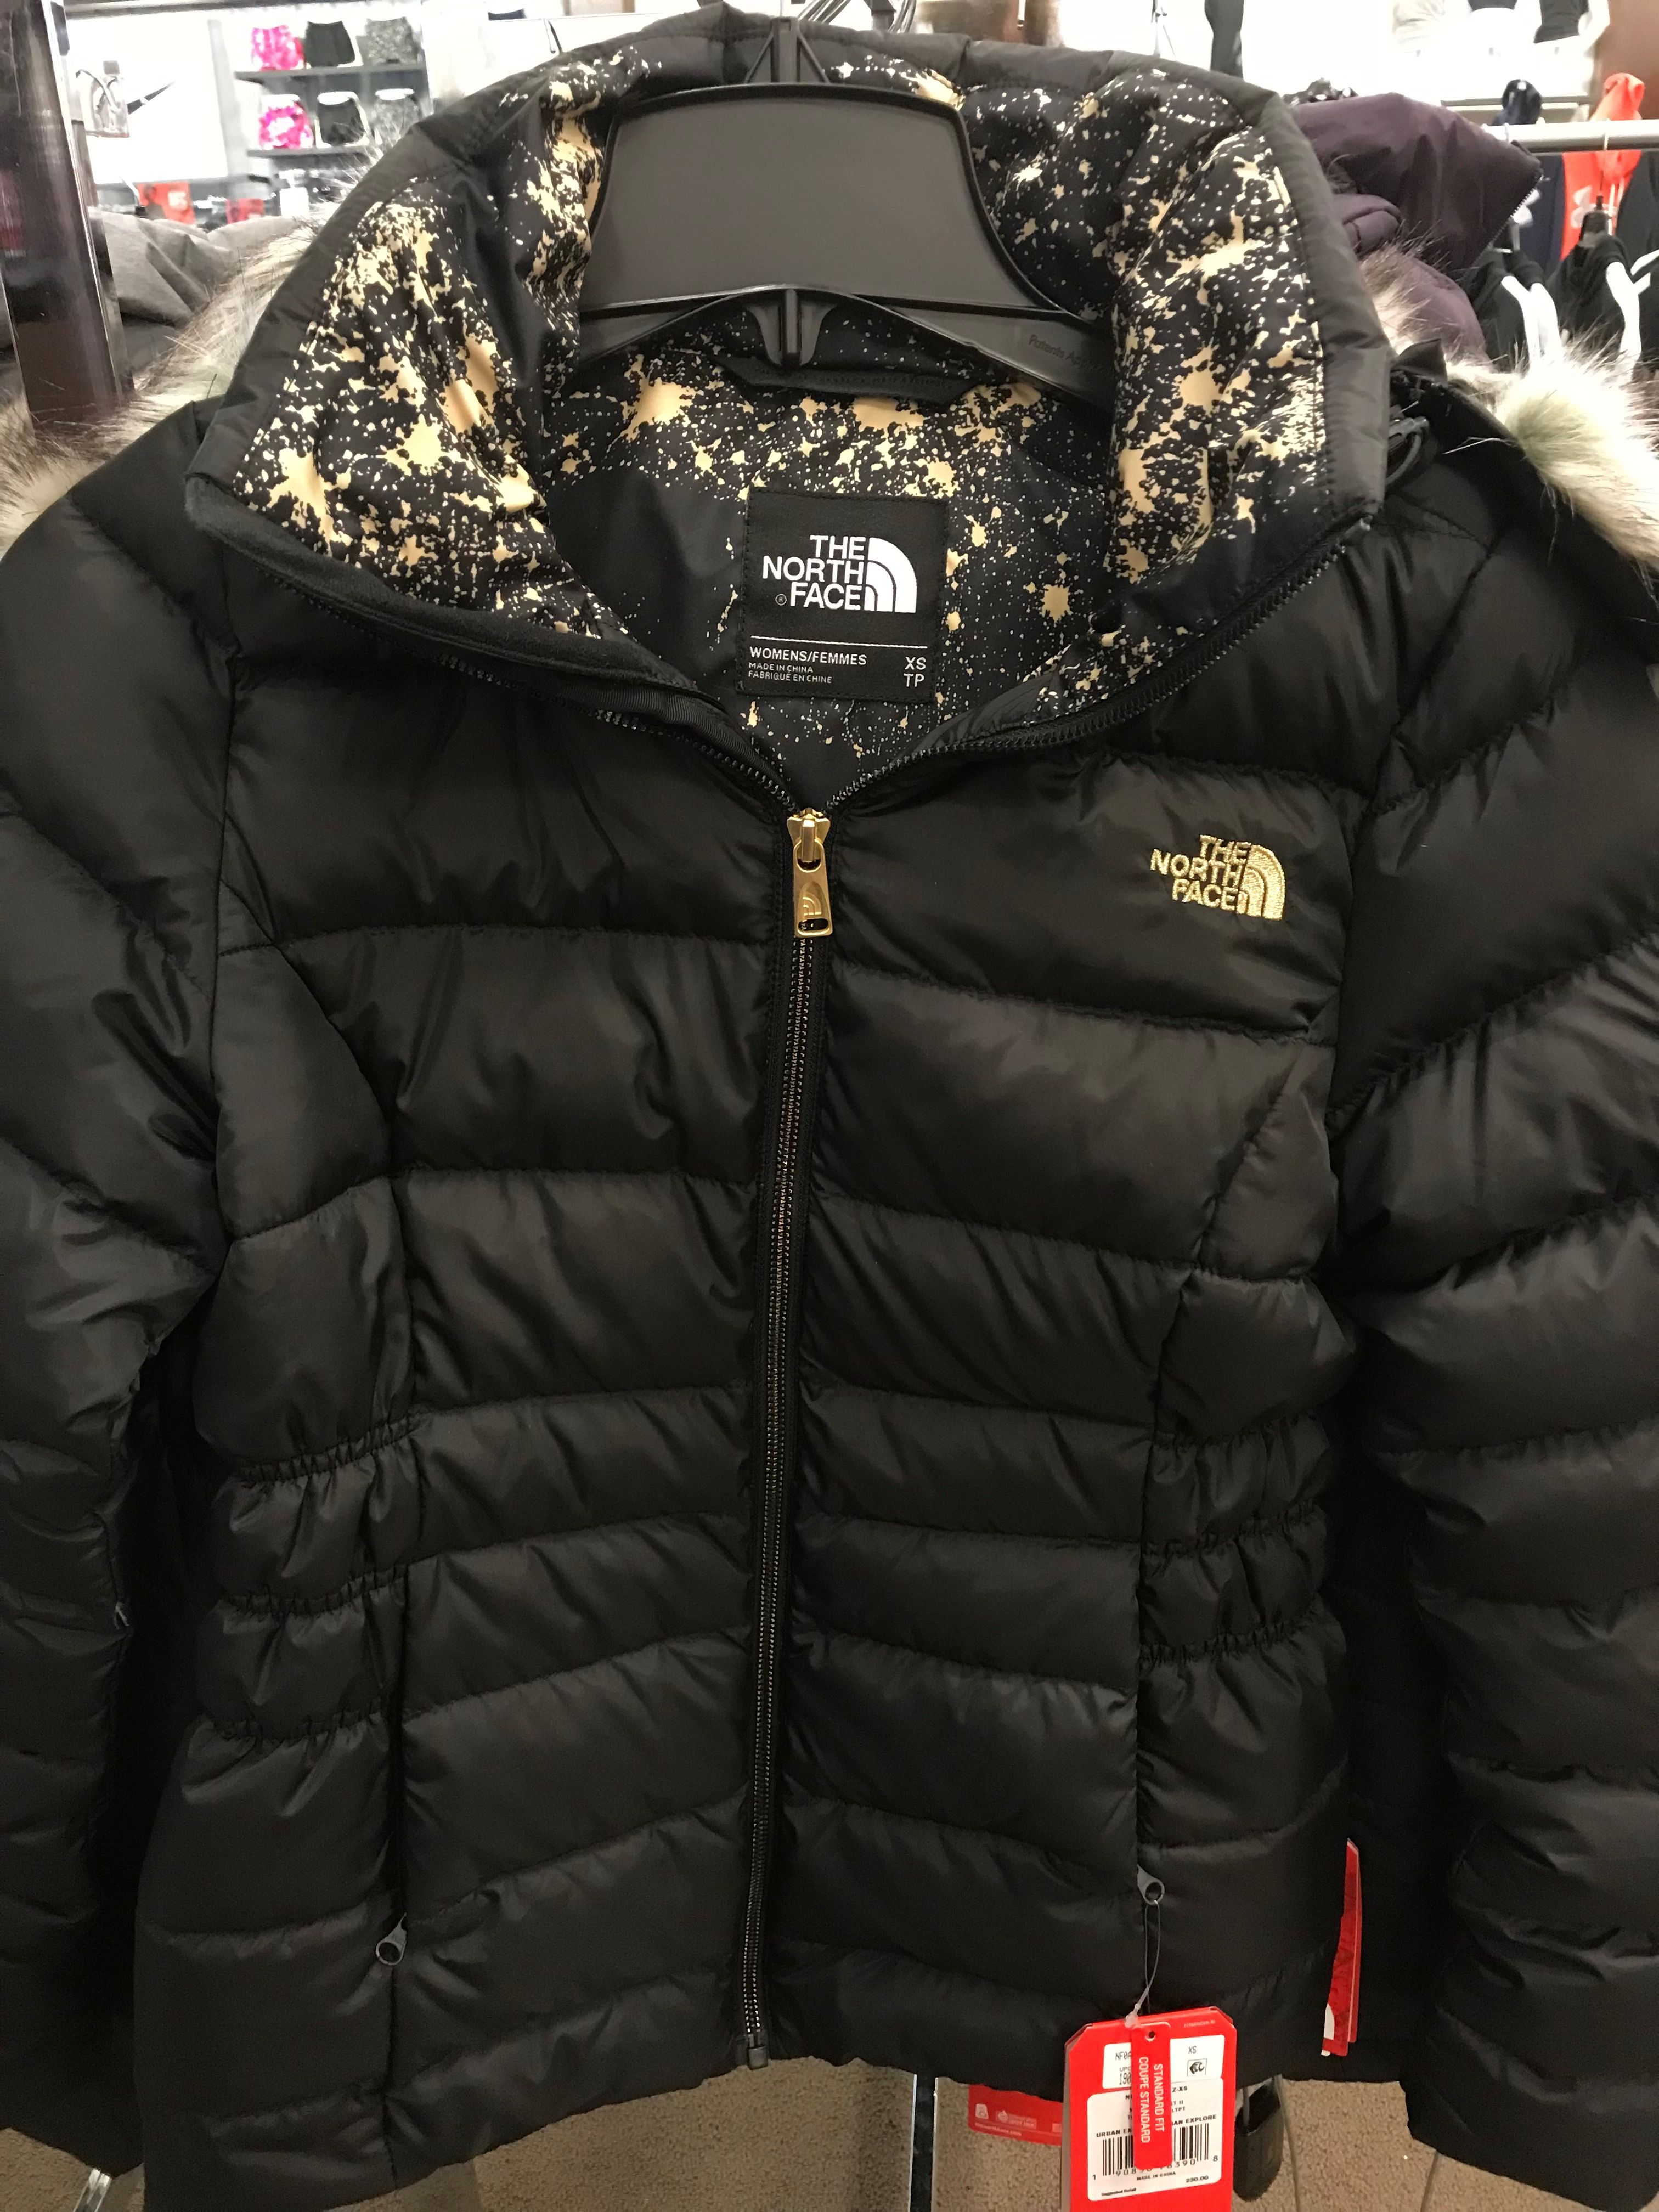 Macy S North Face Incorporating Gold Color Into Their Logo Winter Jackets The North Face Fashion [ 4032 x 3024 Pixel ]